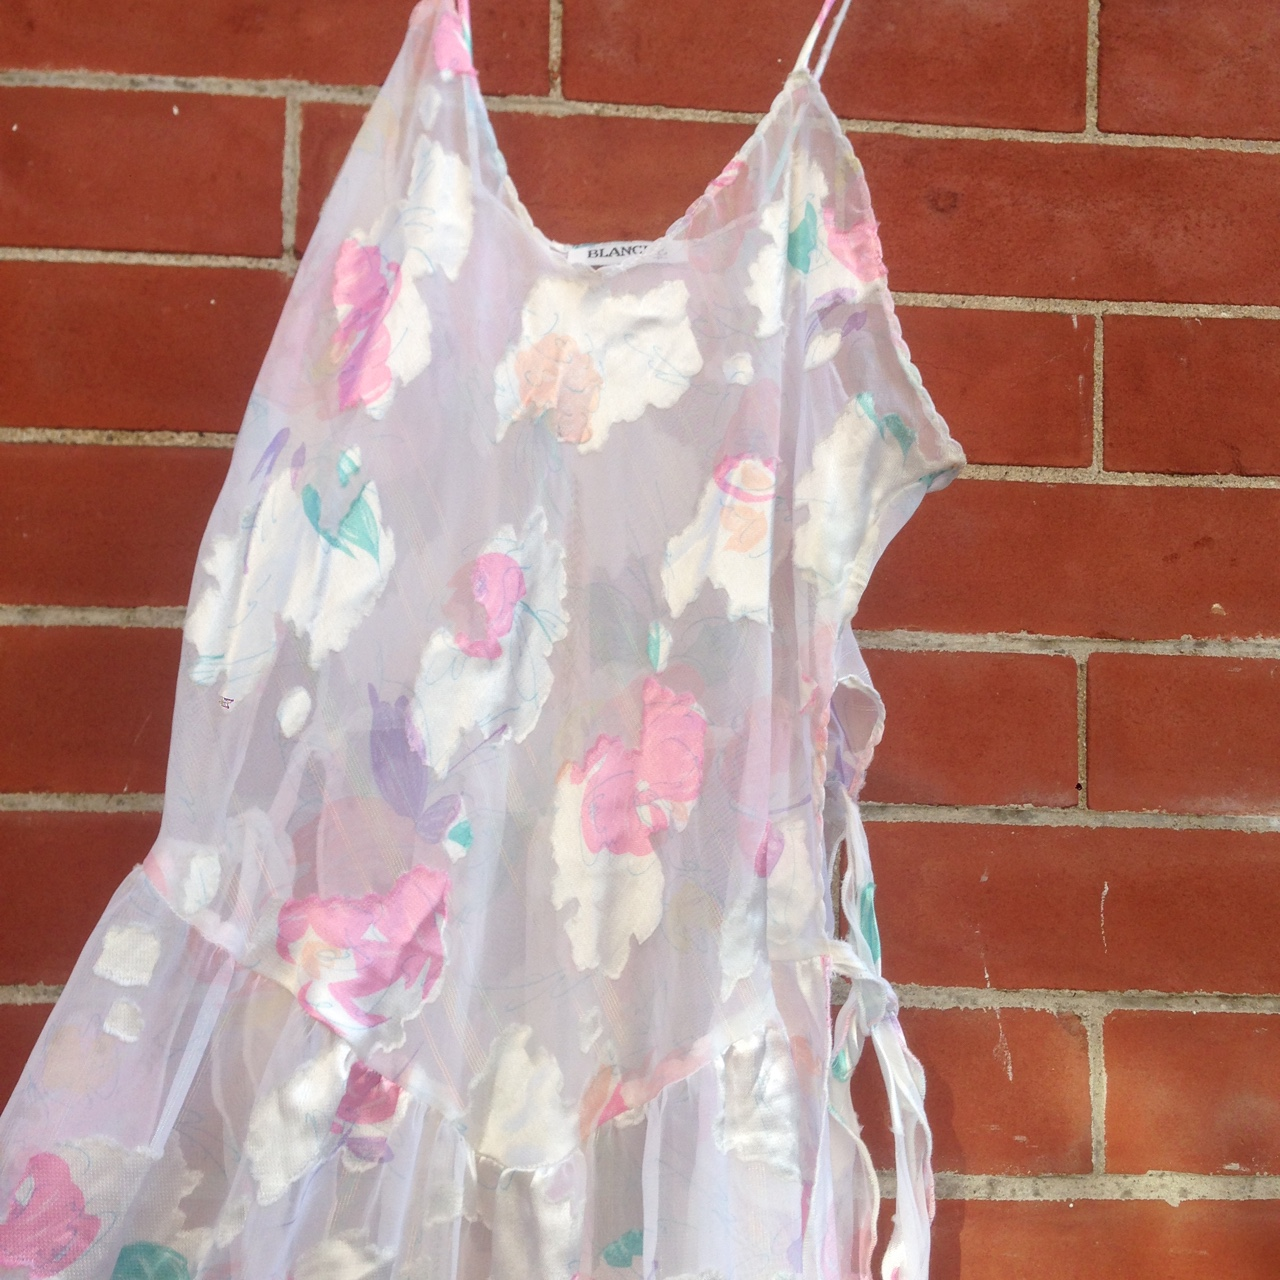 90s silky translucent dress cloudy pattern with    - Depop